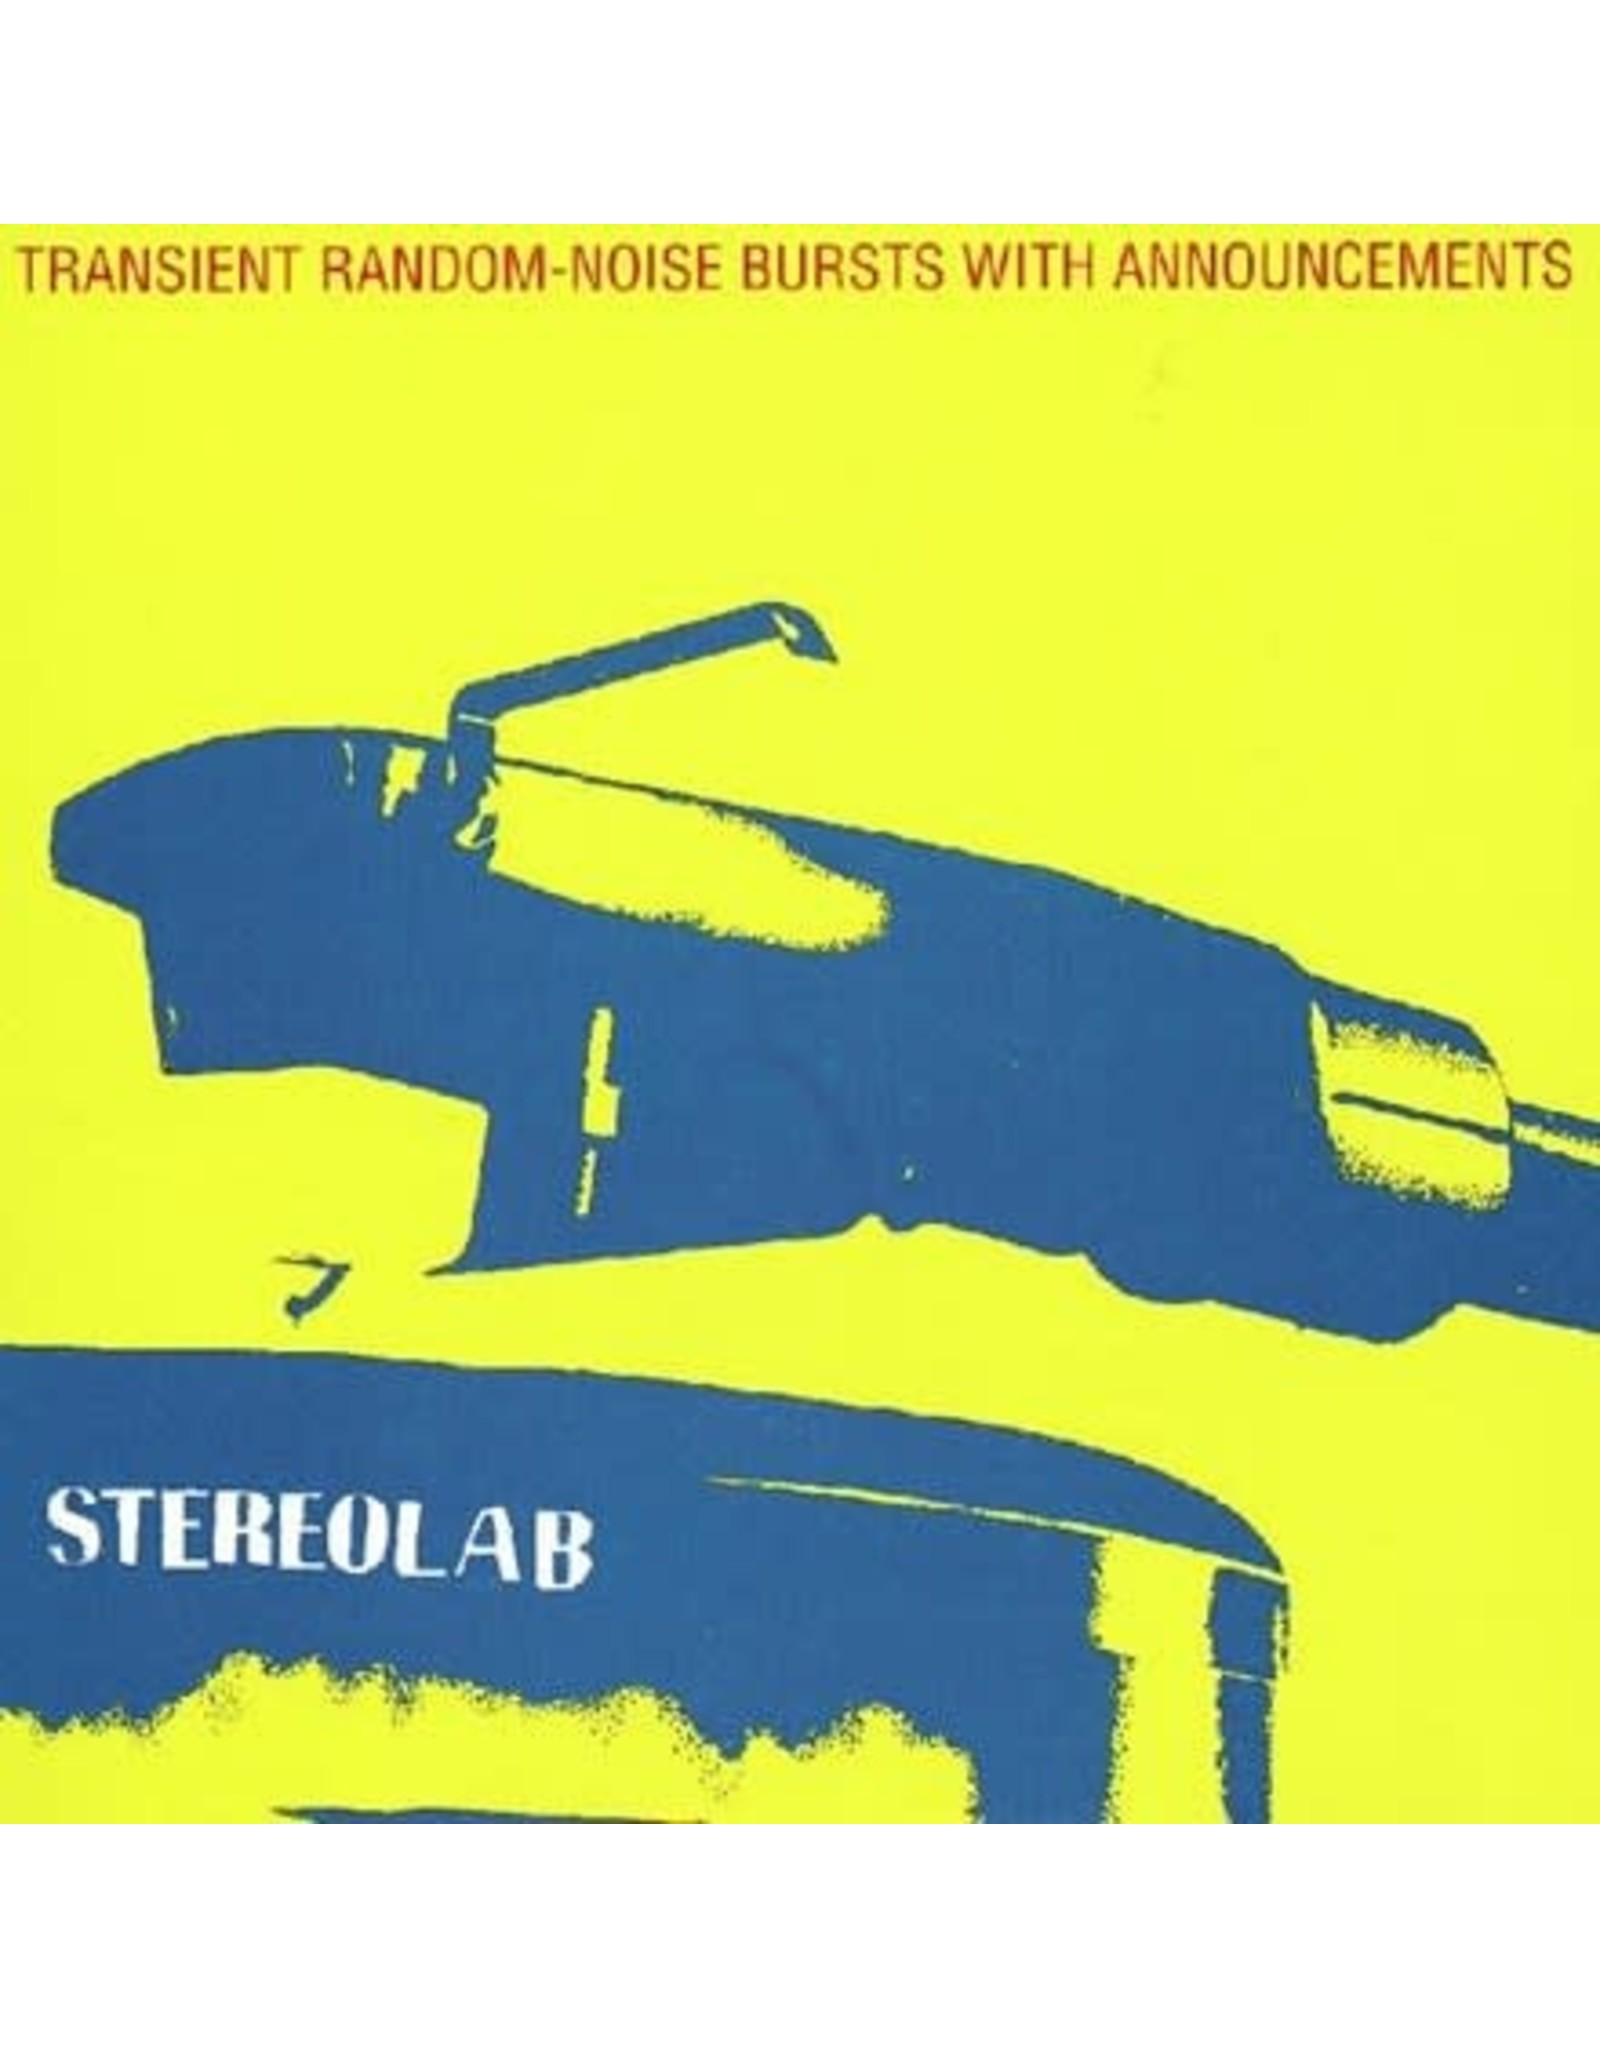 Duophonic Stereolab: Transient Random-Noise Bursts With Announcements (expanded edition) (3LP) LP